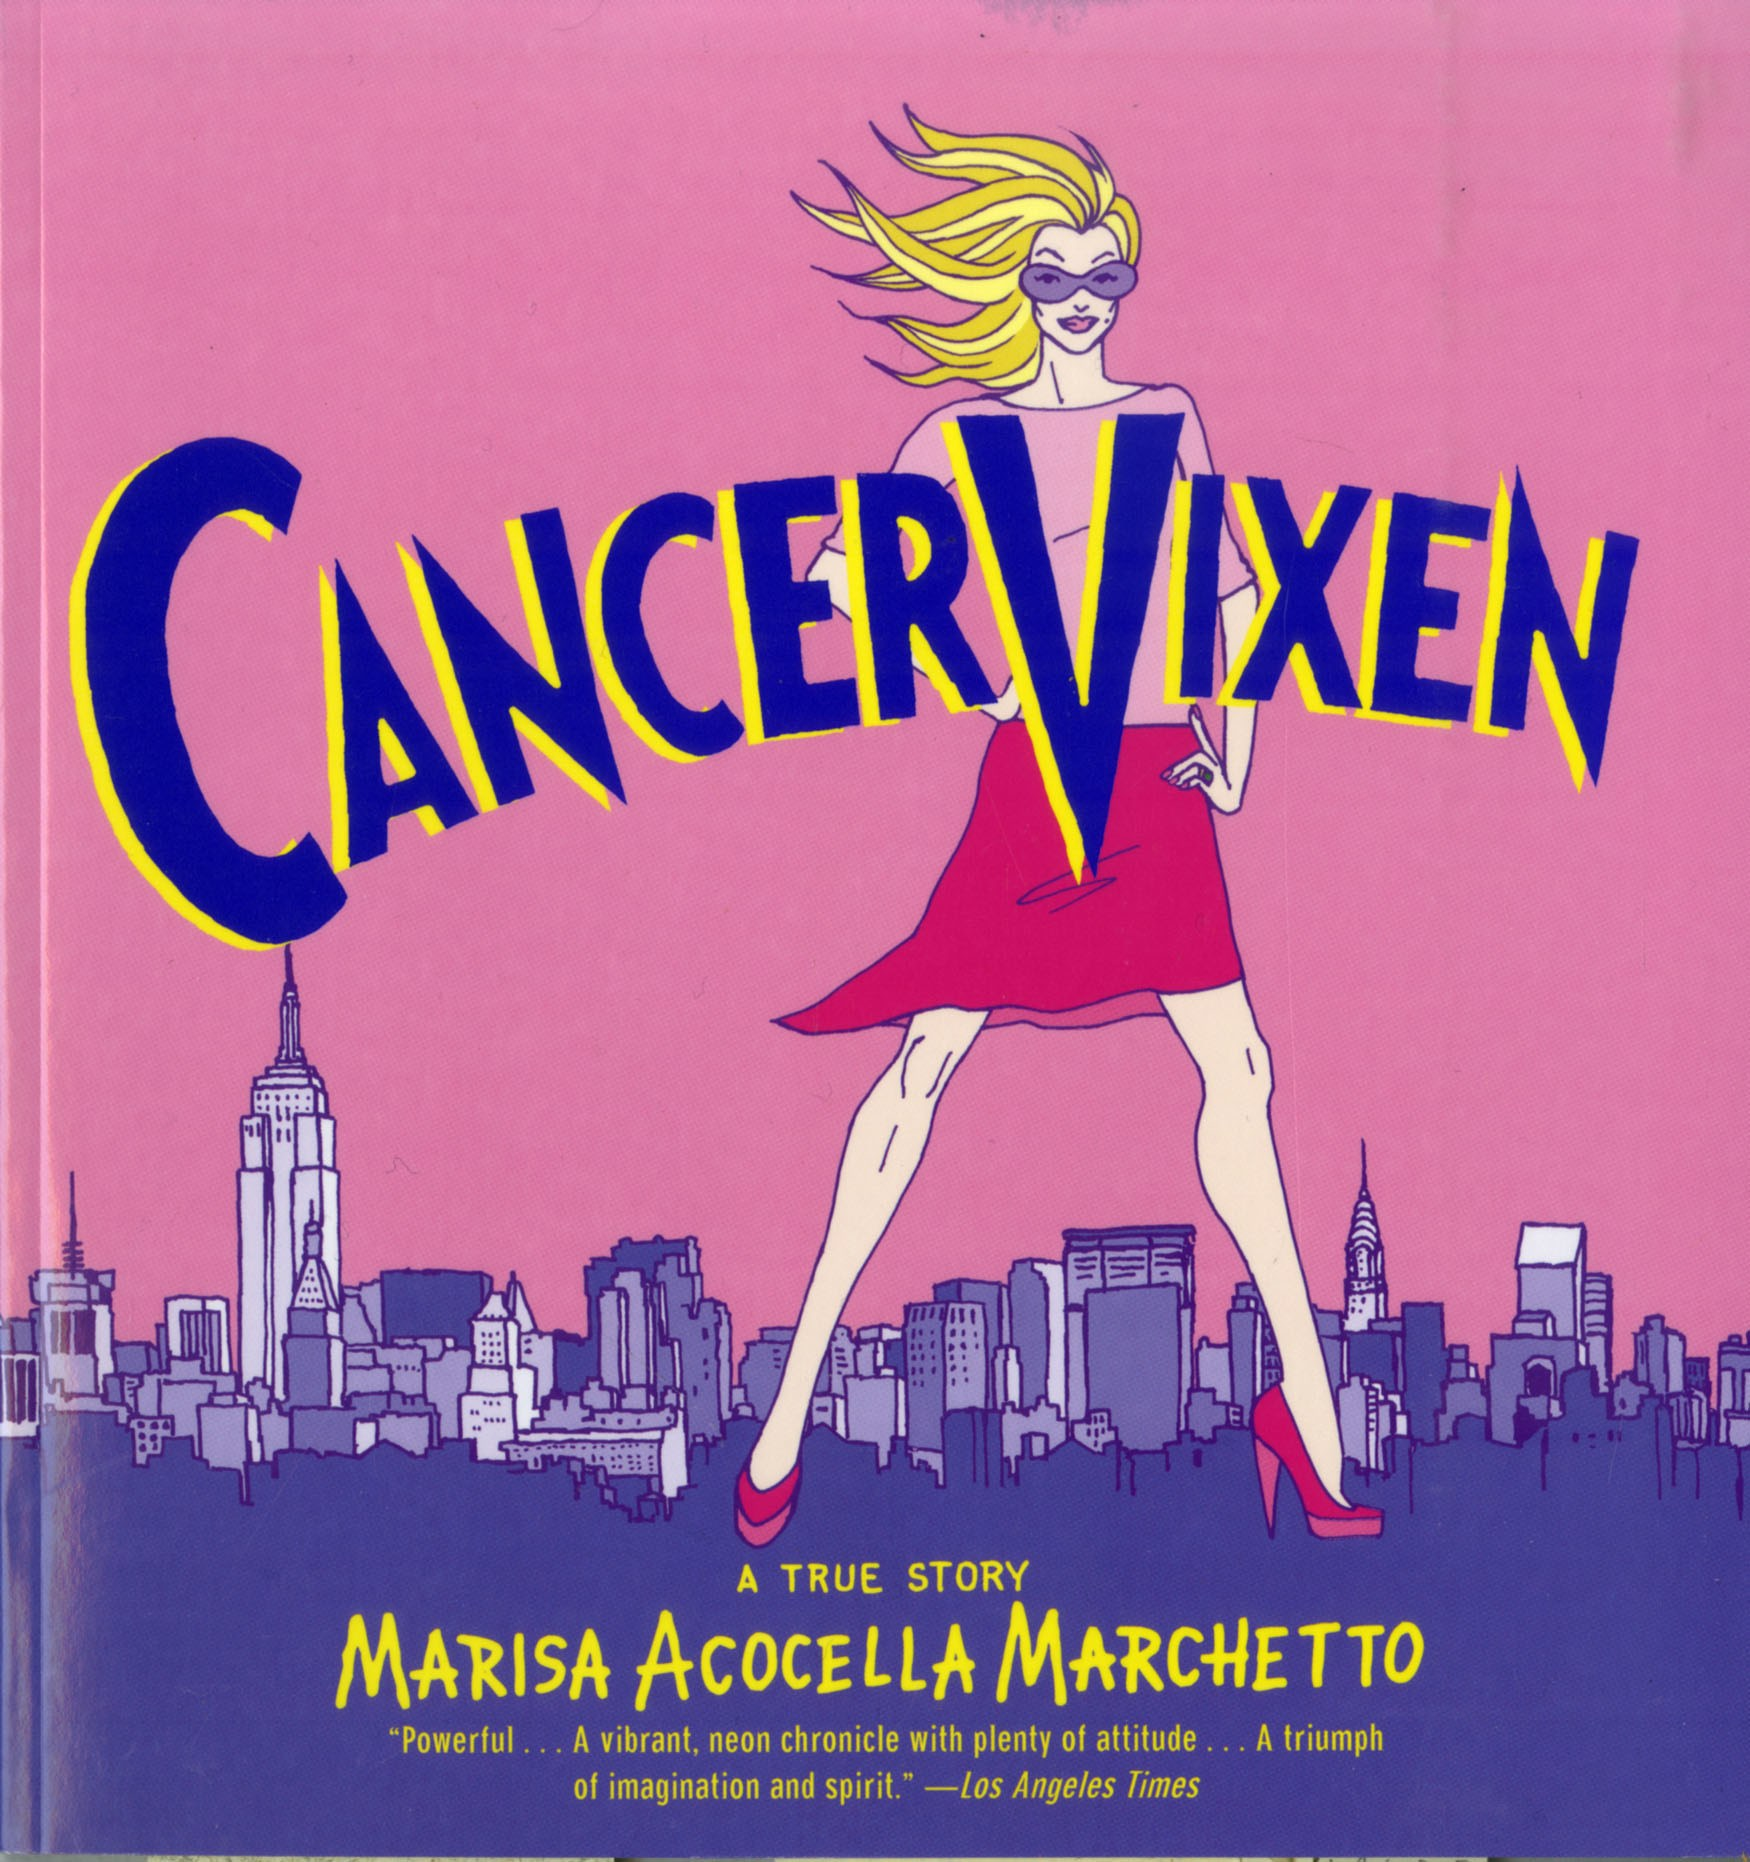 http://spinoff.comicbookresources.com/2013/03/13/cate-blanchett-bringing-cancer-vixen-to-hbo-films/